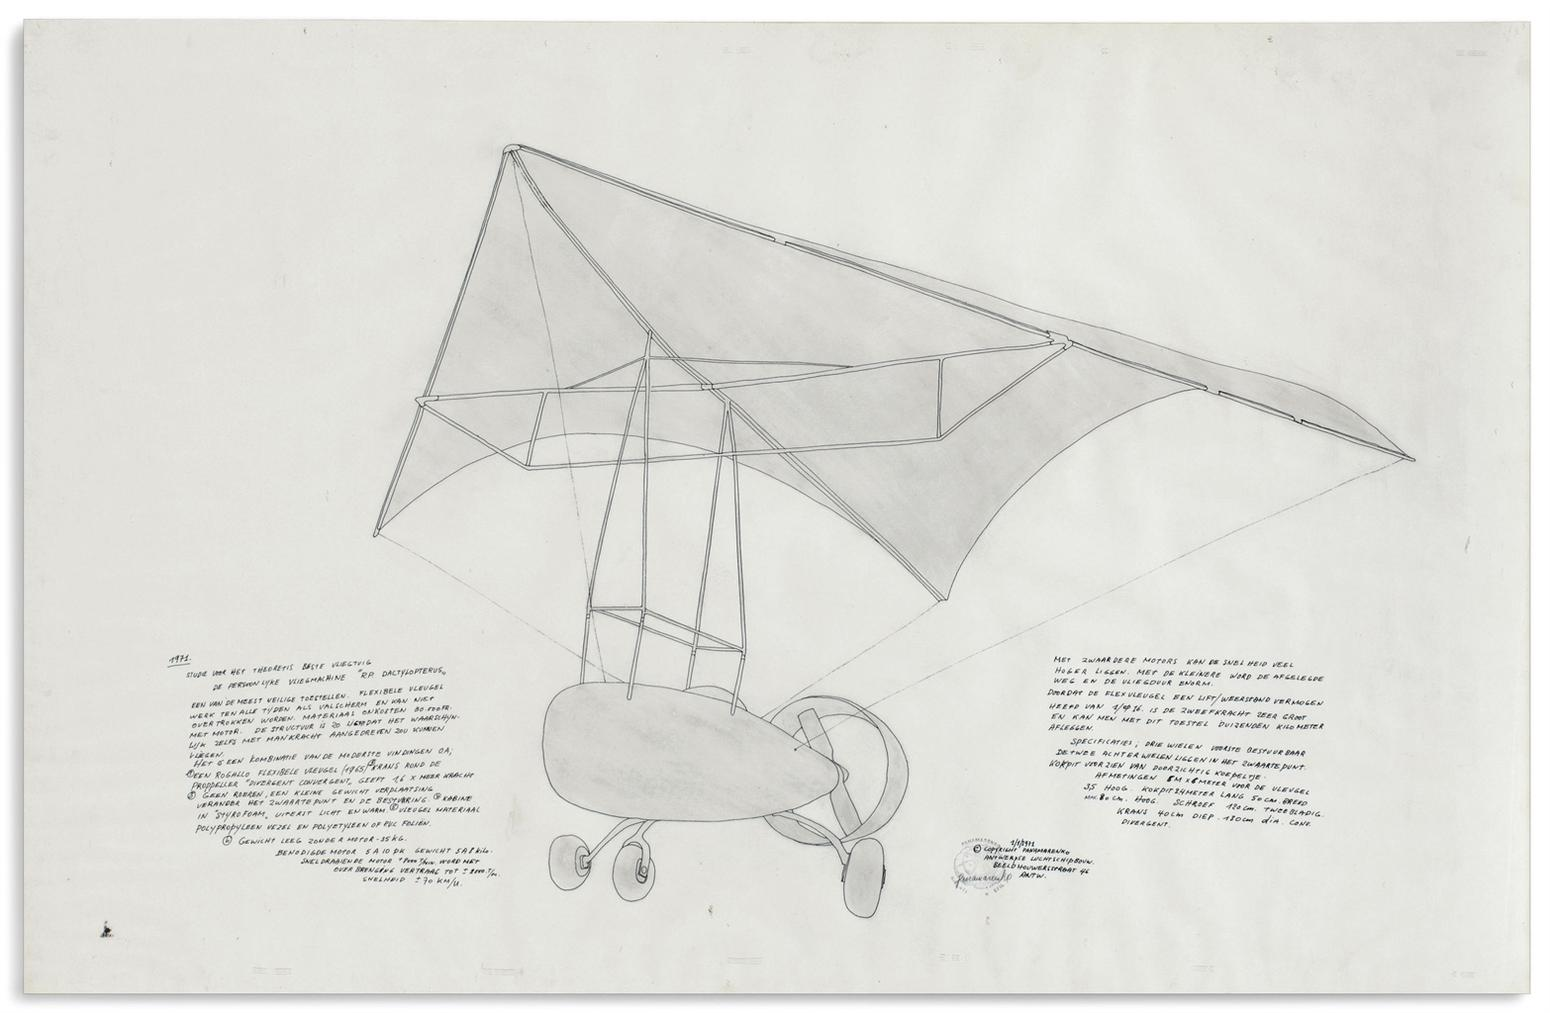 Panamarenko-Studie Voor Het Theoretis Beste Vliegtuig (Study For The Best Theoretical Airplane)-1971